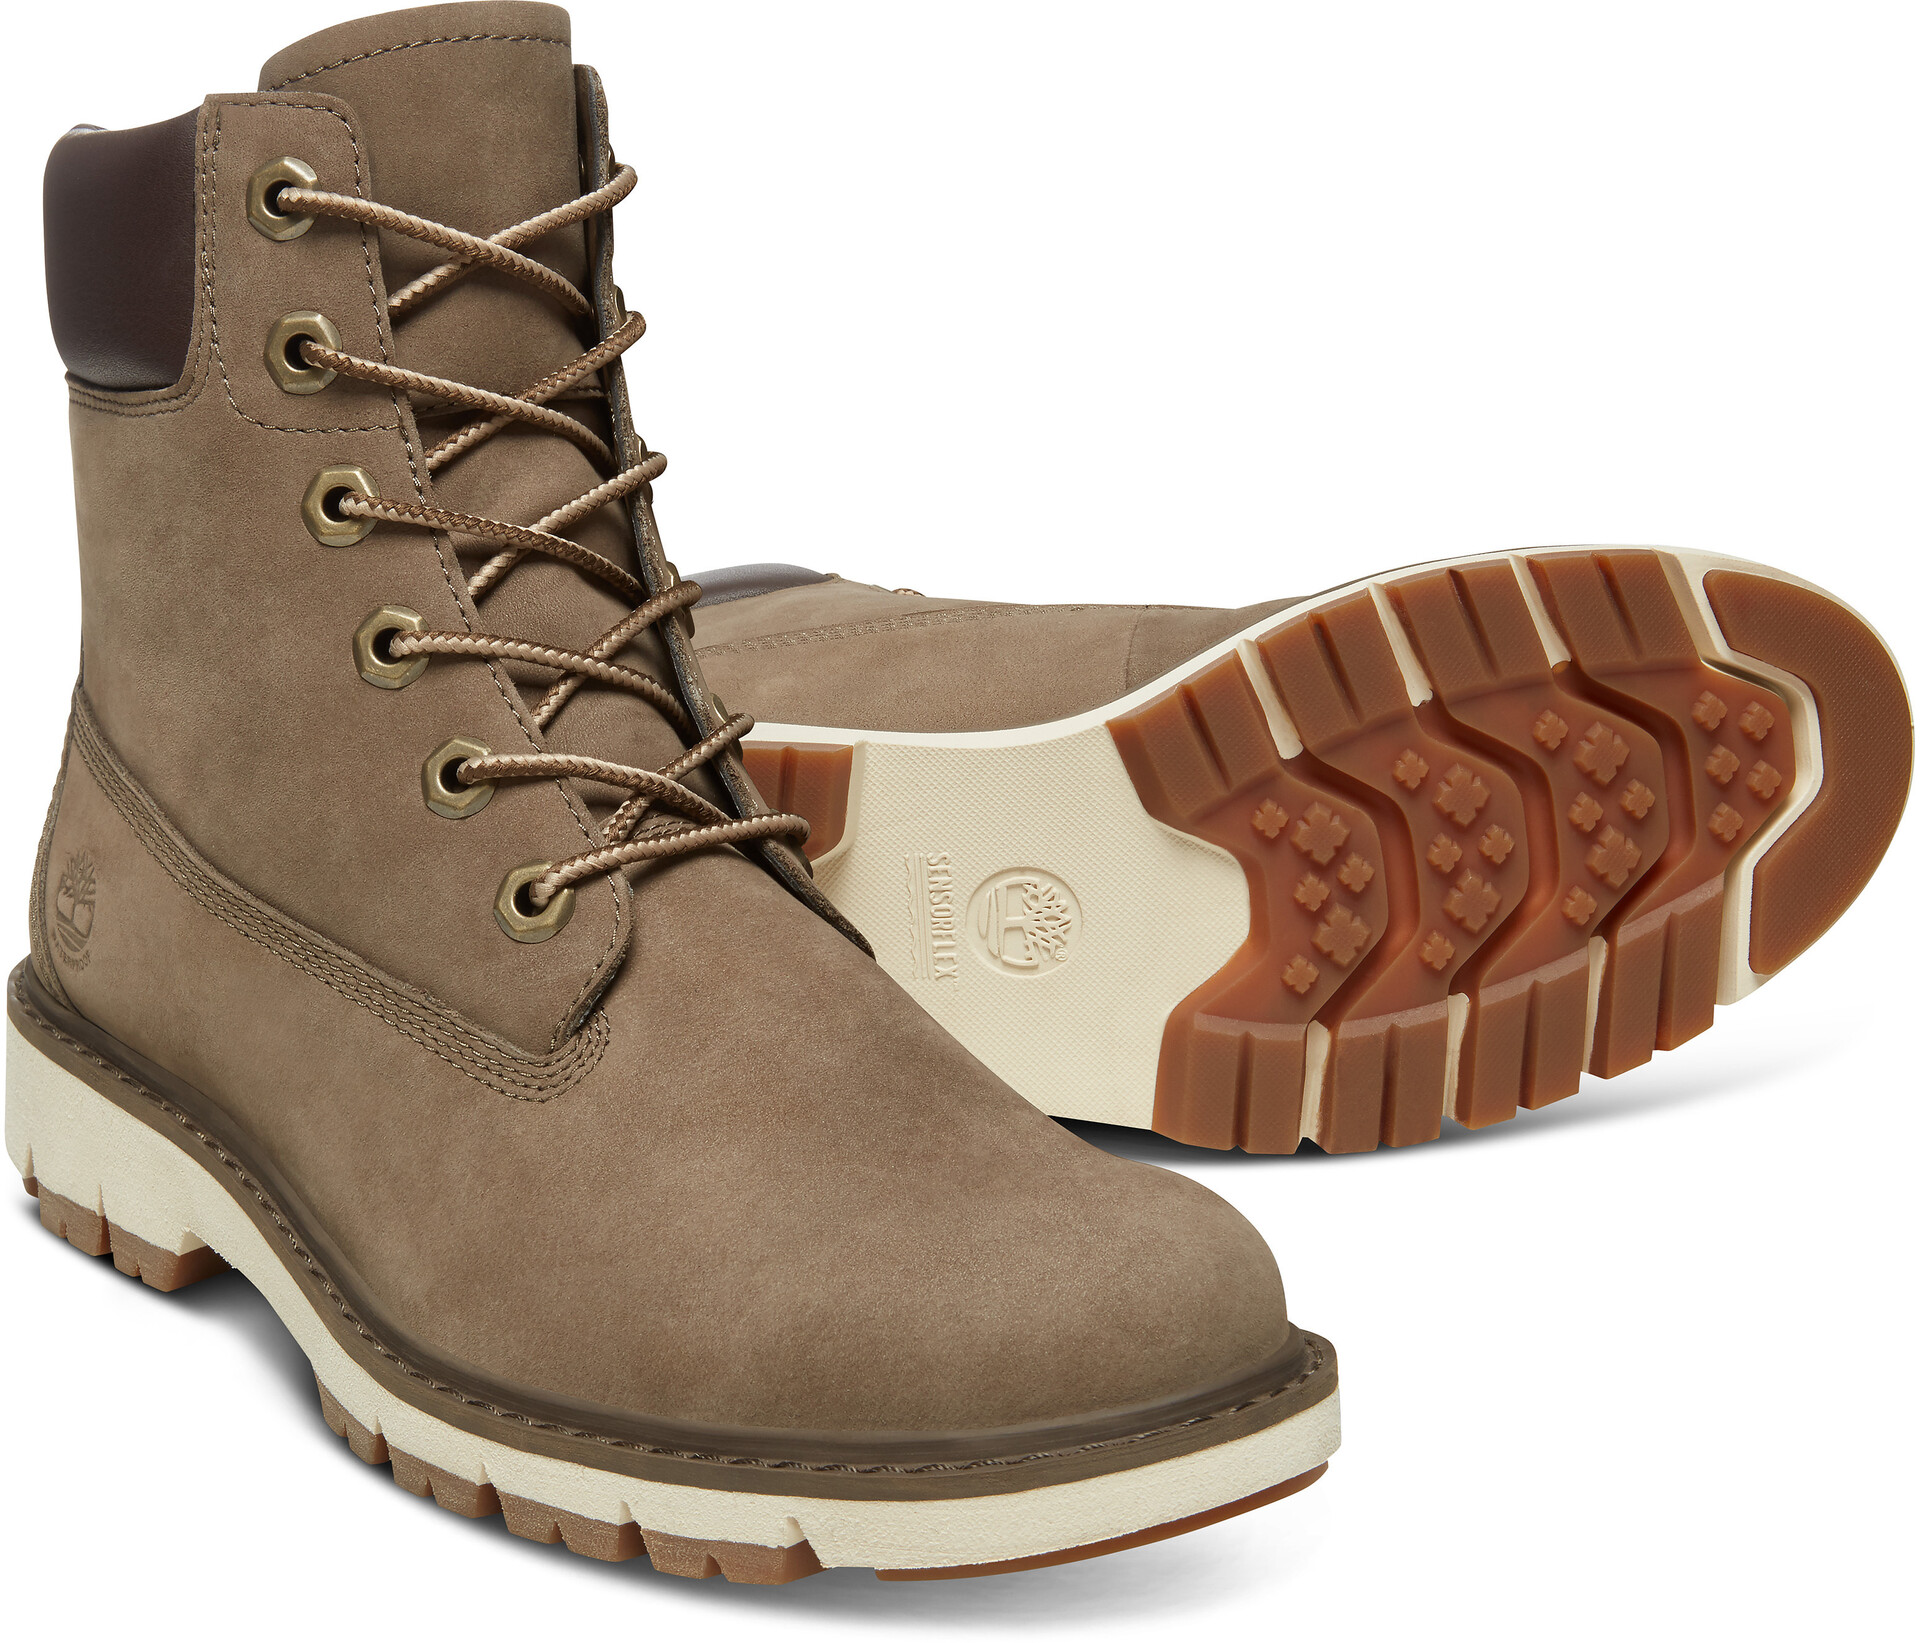 Timberland Chaussures 6 Campz Olive Way Ow4k0bfqz Sur Femme Lucia Wp w7qAFZUHx